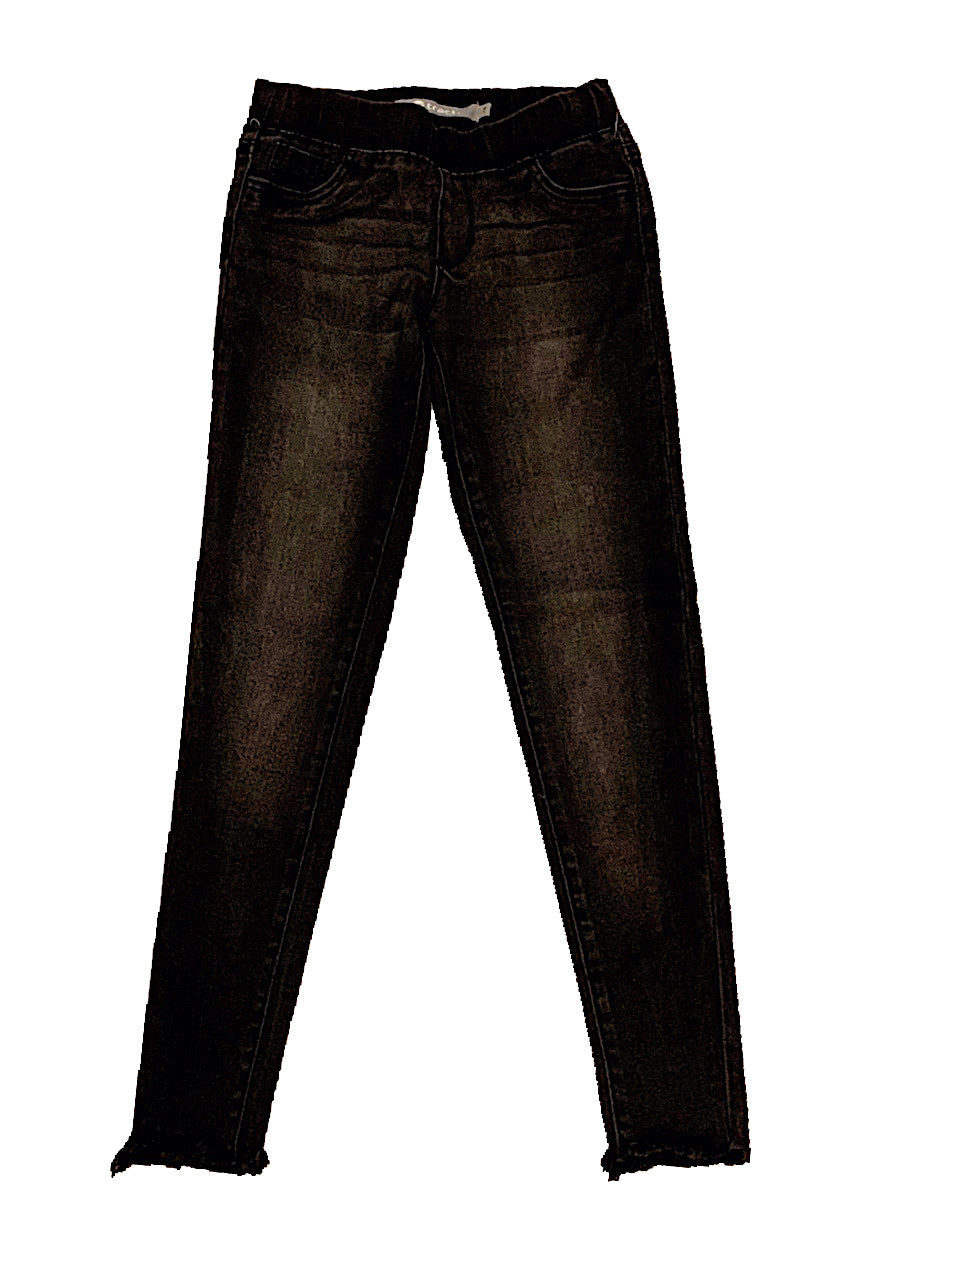 TRACTR VINTAGE BLACK PULL ON JEANS